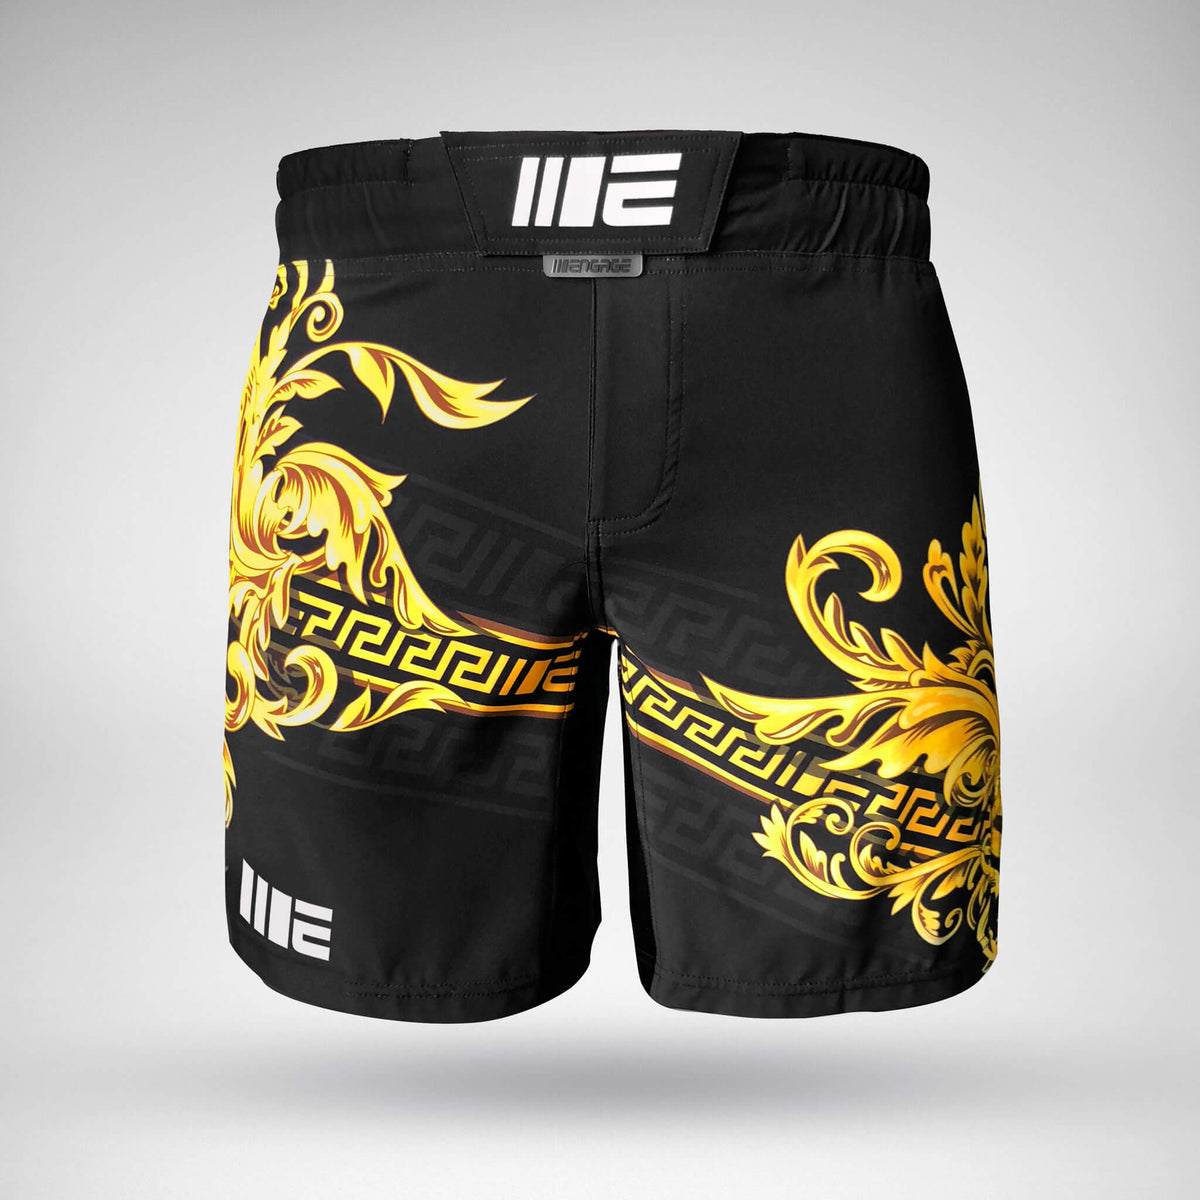 Engage Gold Barroco MMA Grappling Short V2.0 MMA / K1 Shorts Engage MMA Apparel, Fight Gear and Fightwear Online Shop Australia